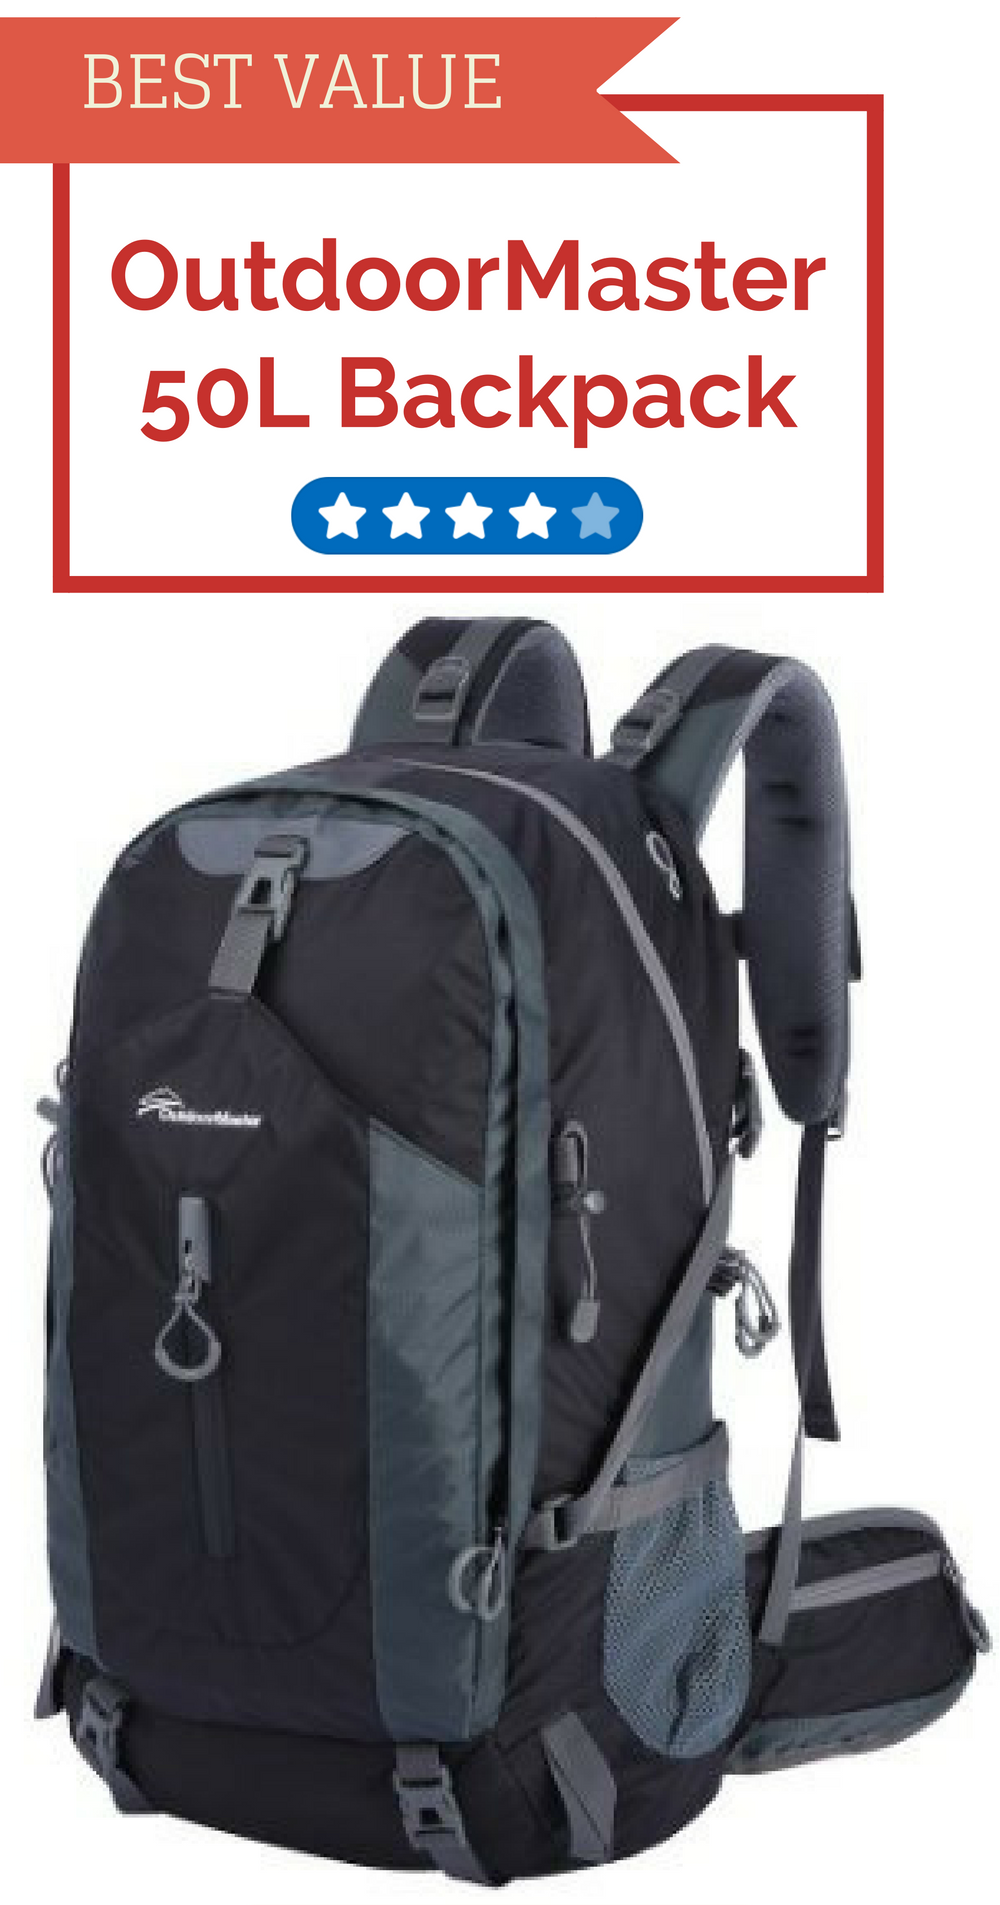 OutdoorMaster 50L Backpack